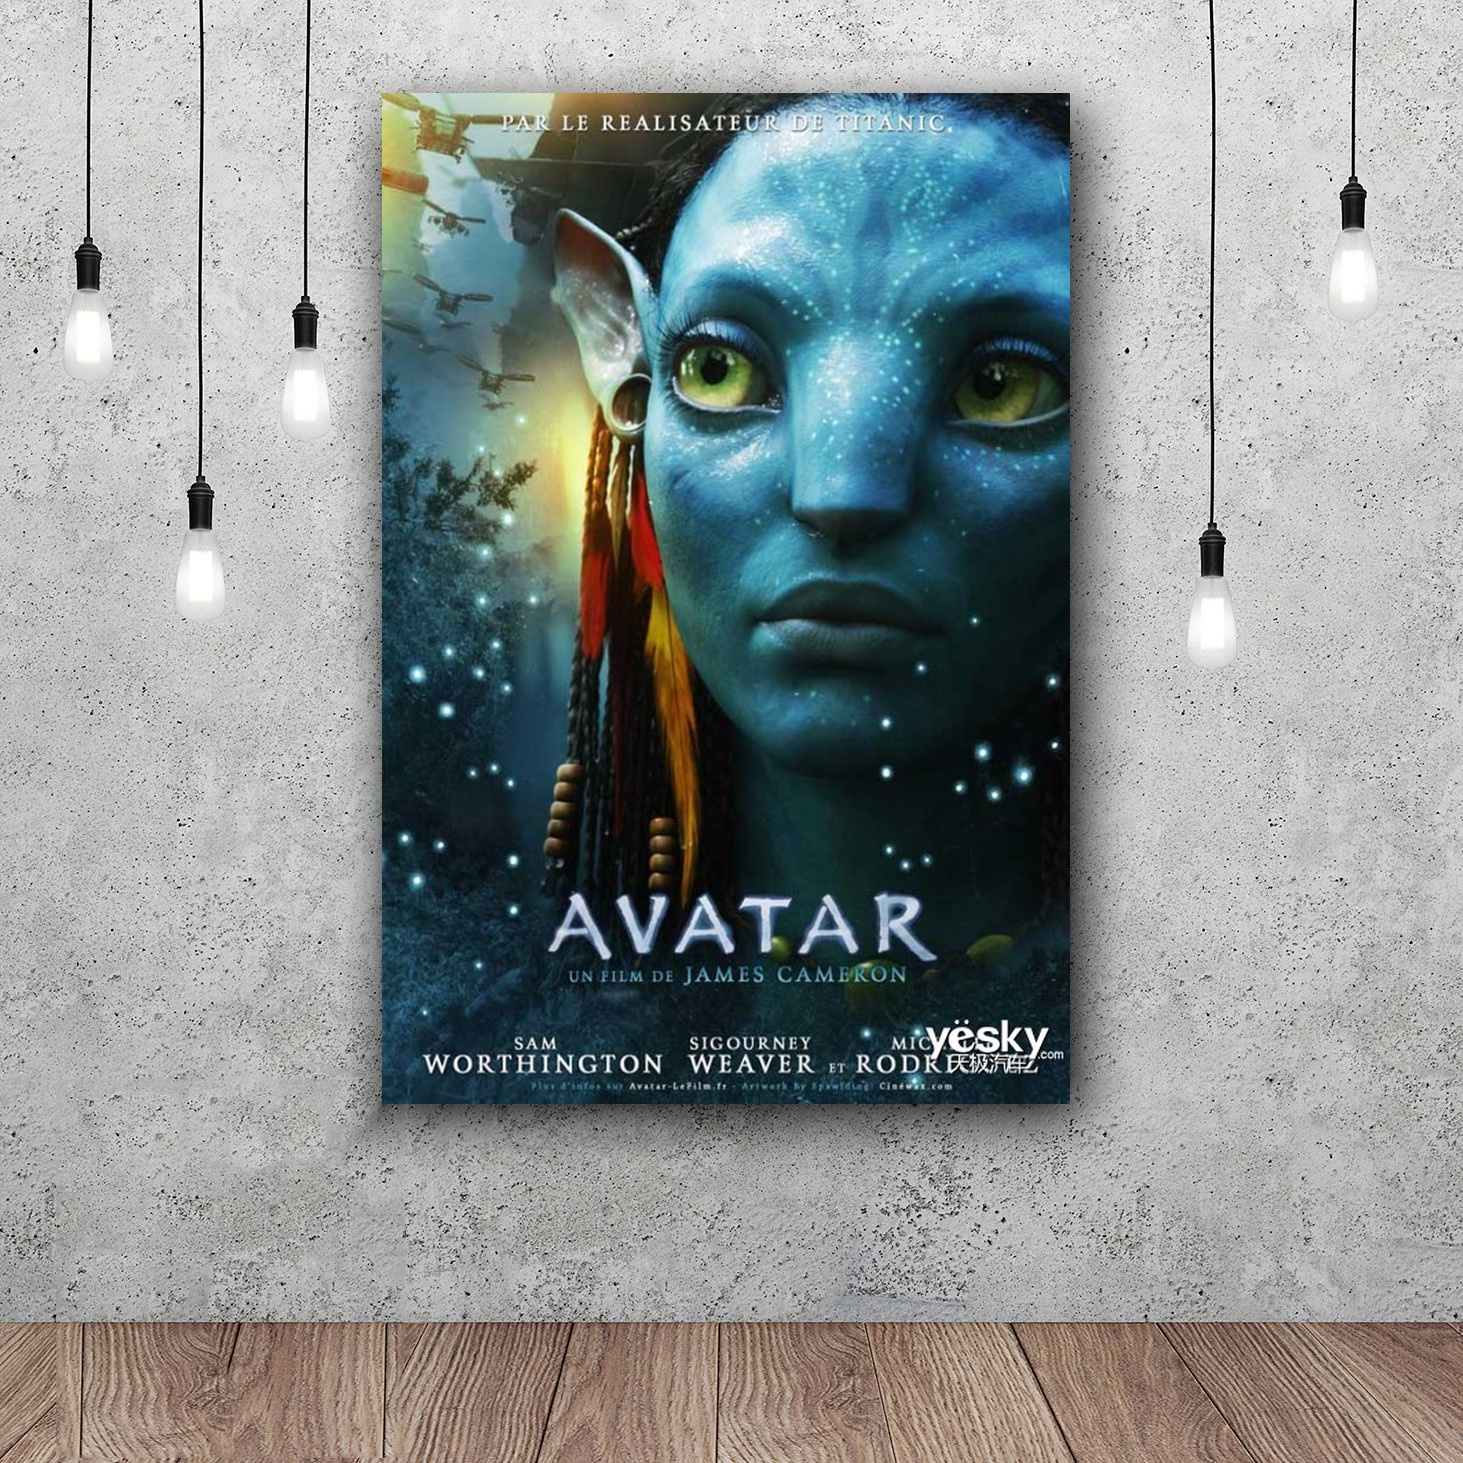 Avatar Movie Poster: Avatar 2 Silk Poster Decorative 12x18 24x36inch With Free